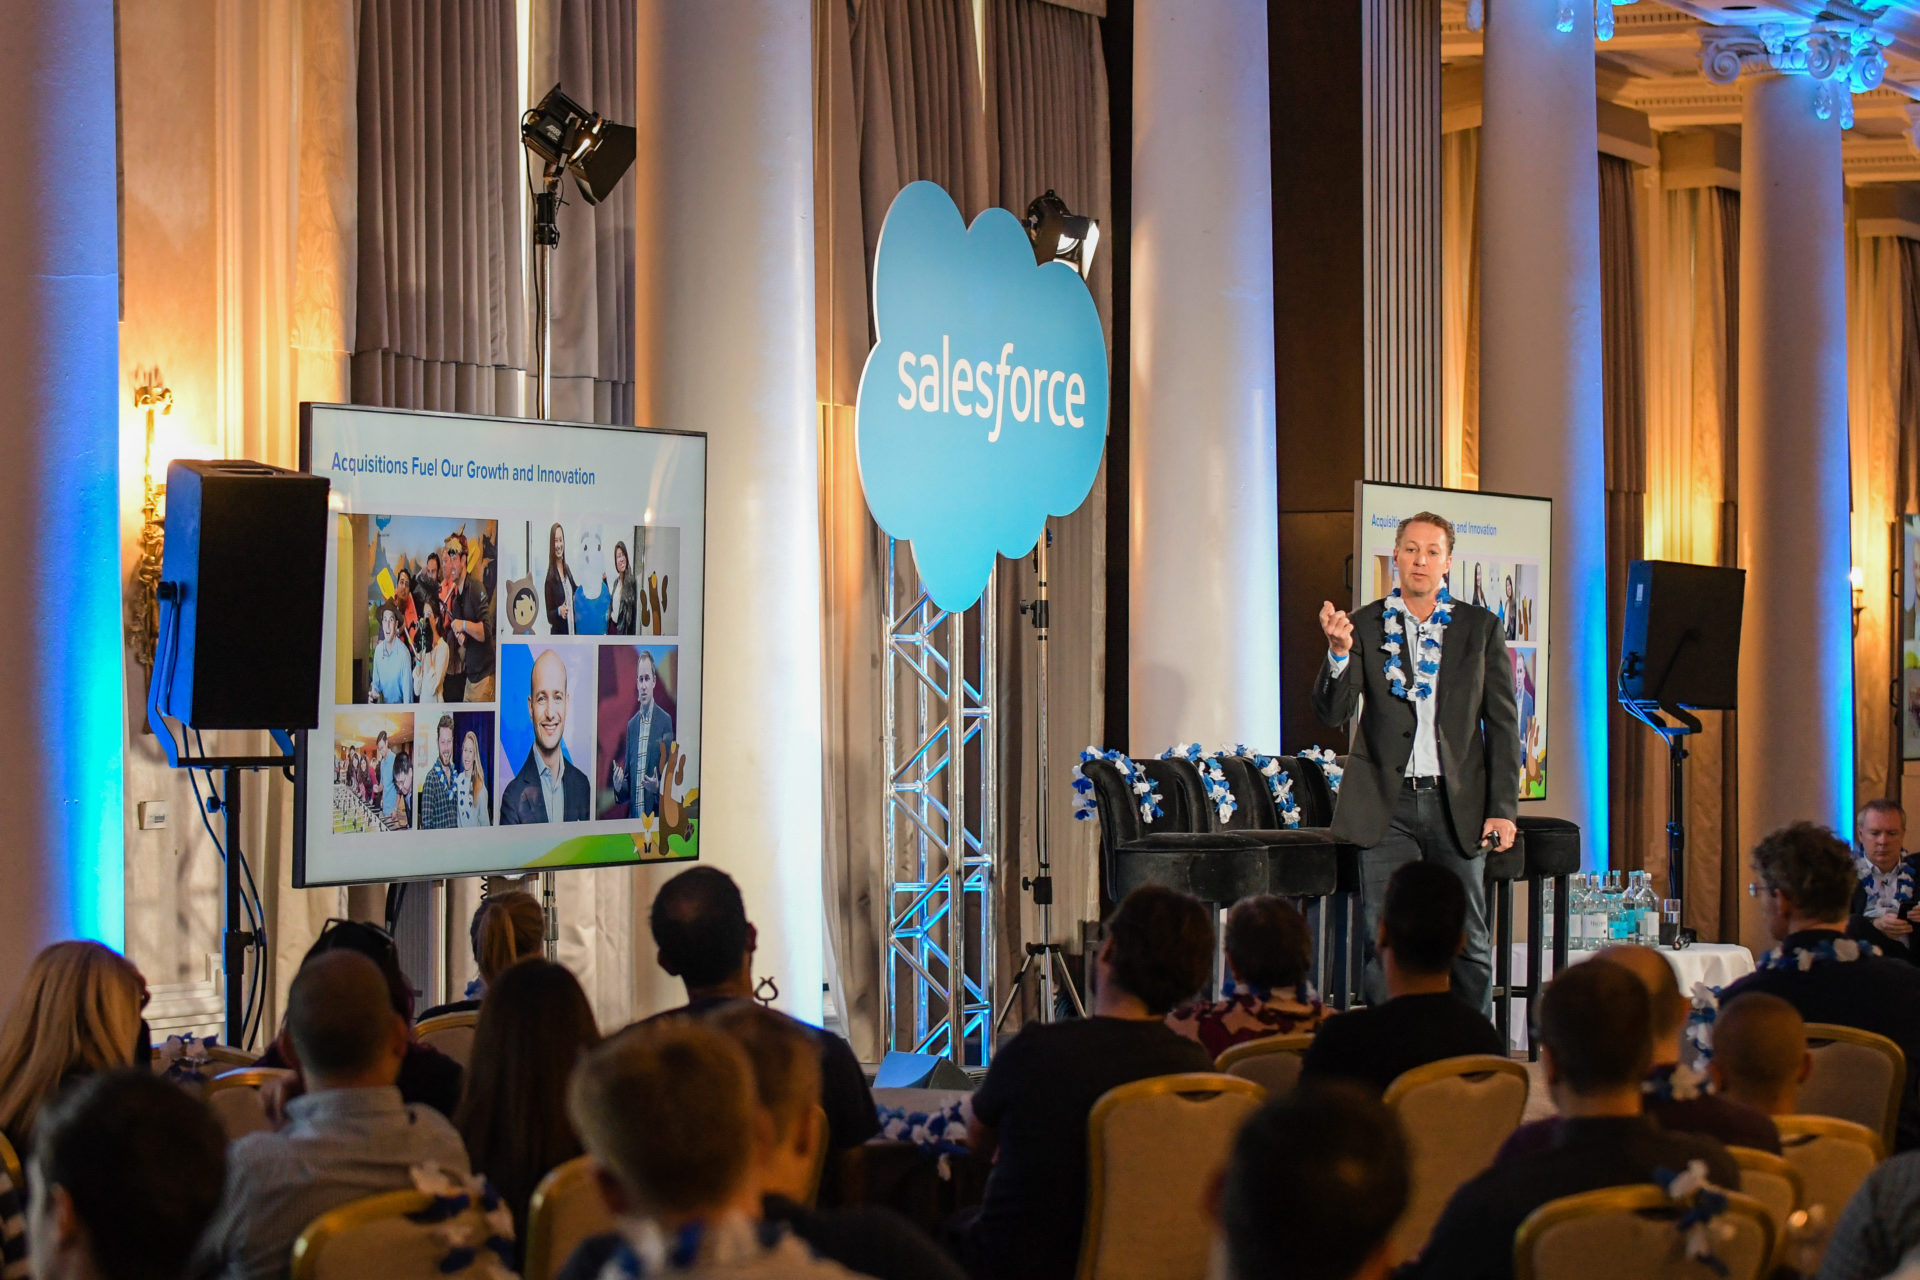 OHM-Salesforce-London-Top Selects-8026.jpg